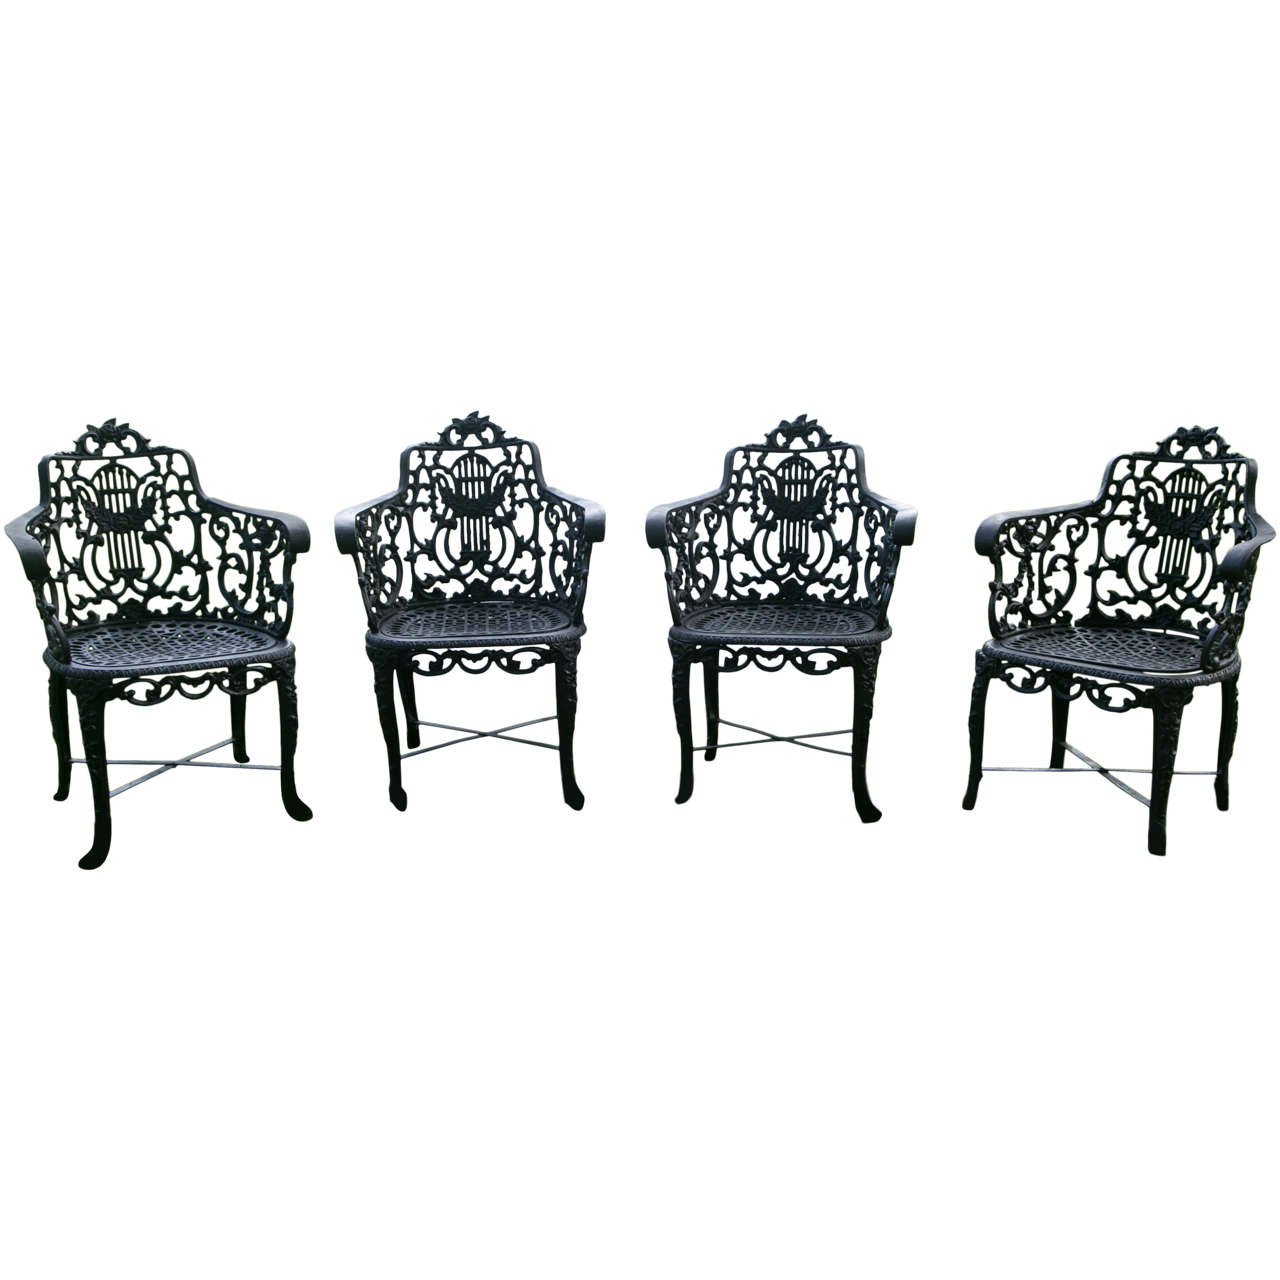 Armchairs With Lyre Backs For Sale At 1stdibs